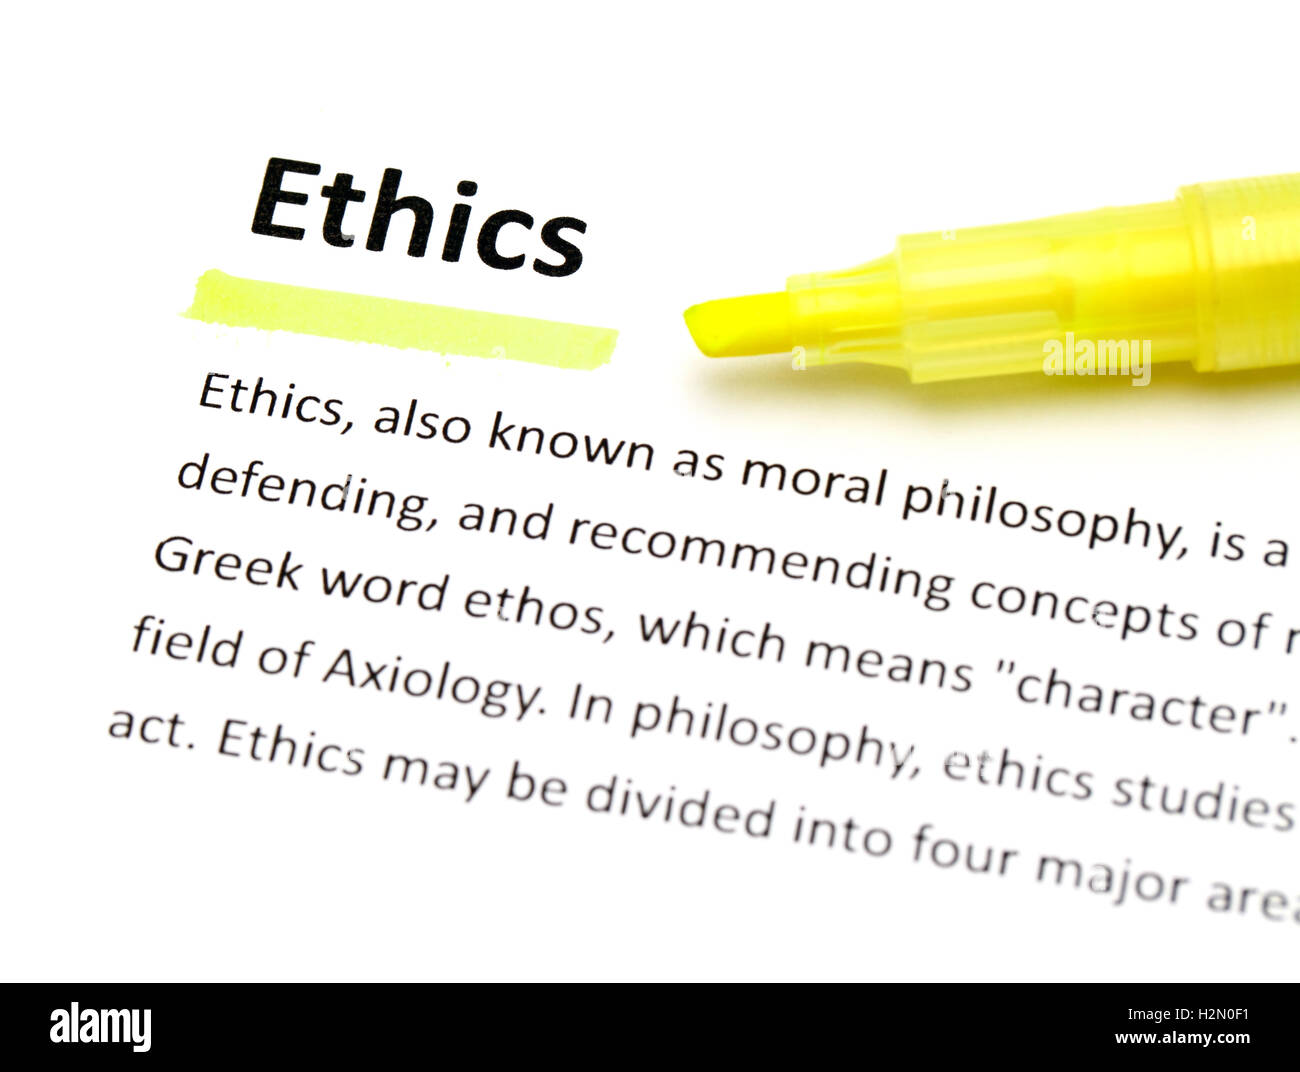 definition of ethics stock photo: 122163301 - alamy